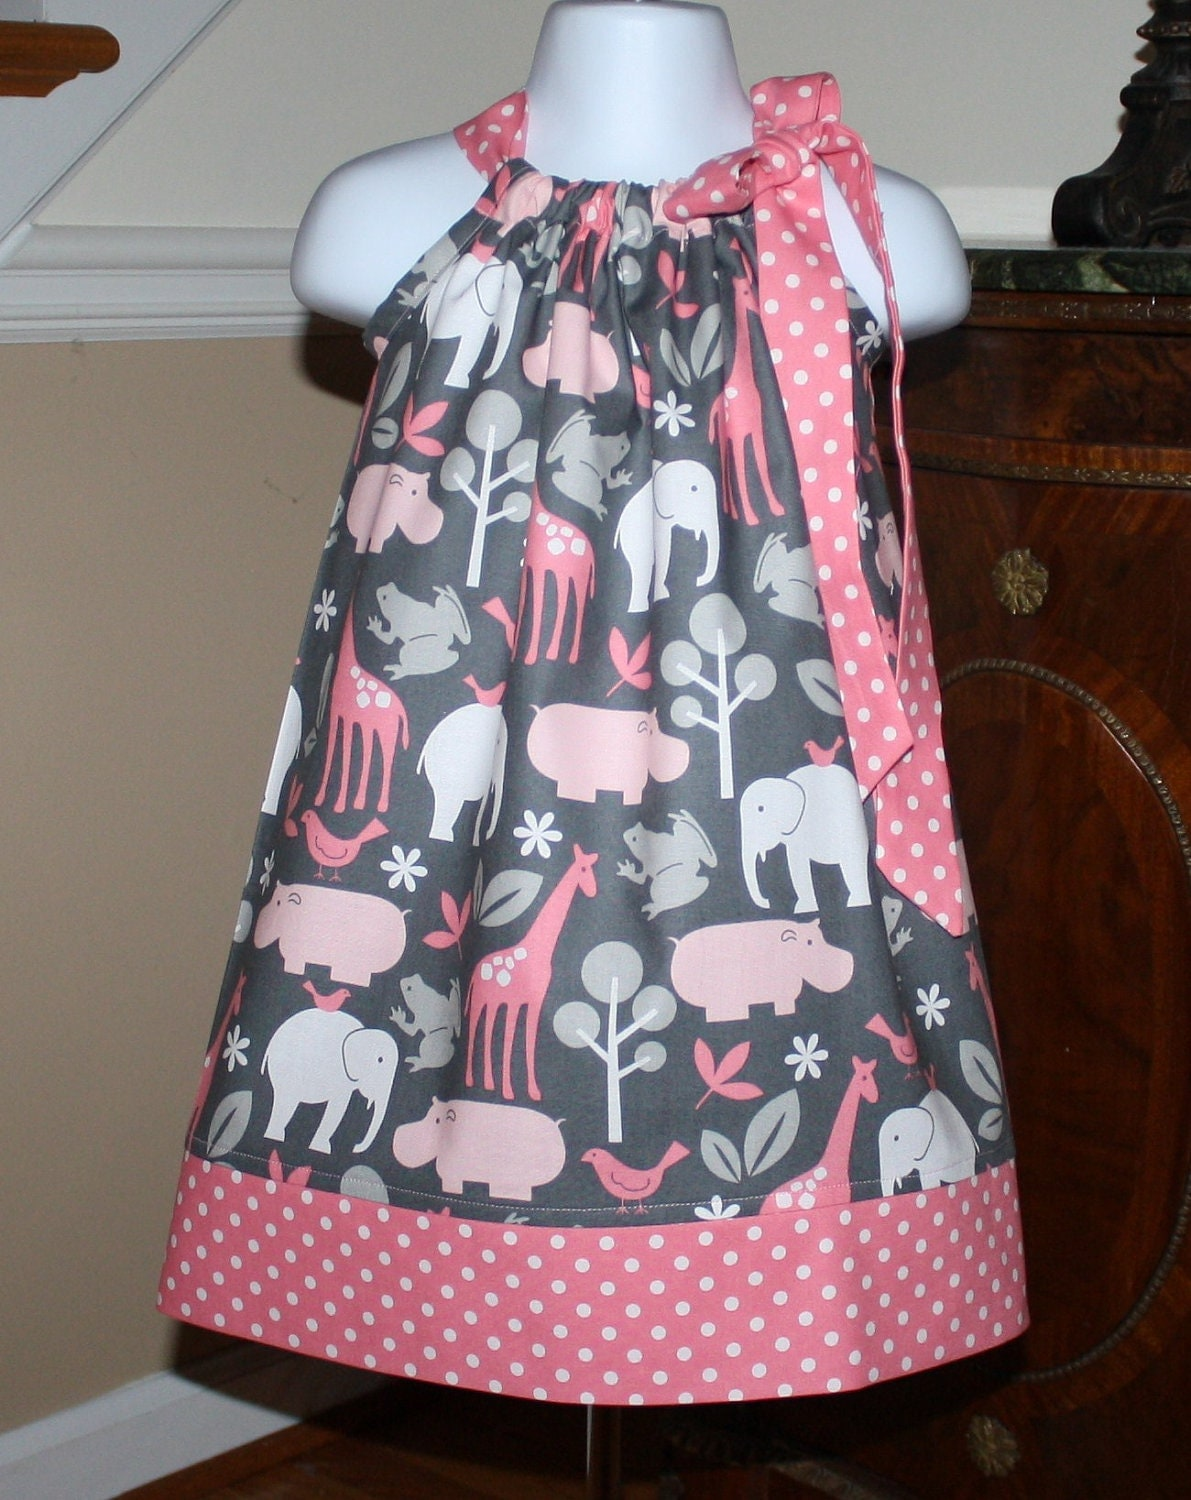 Cute Ideas For Pillowcase Dresses : Pillowcase Dress toddler dresses michael miller by BlakeandBailey